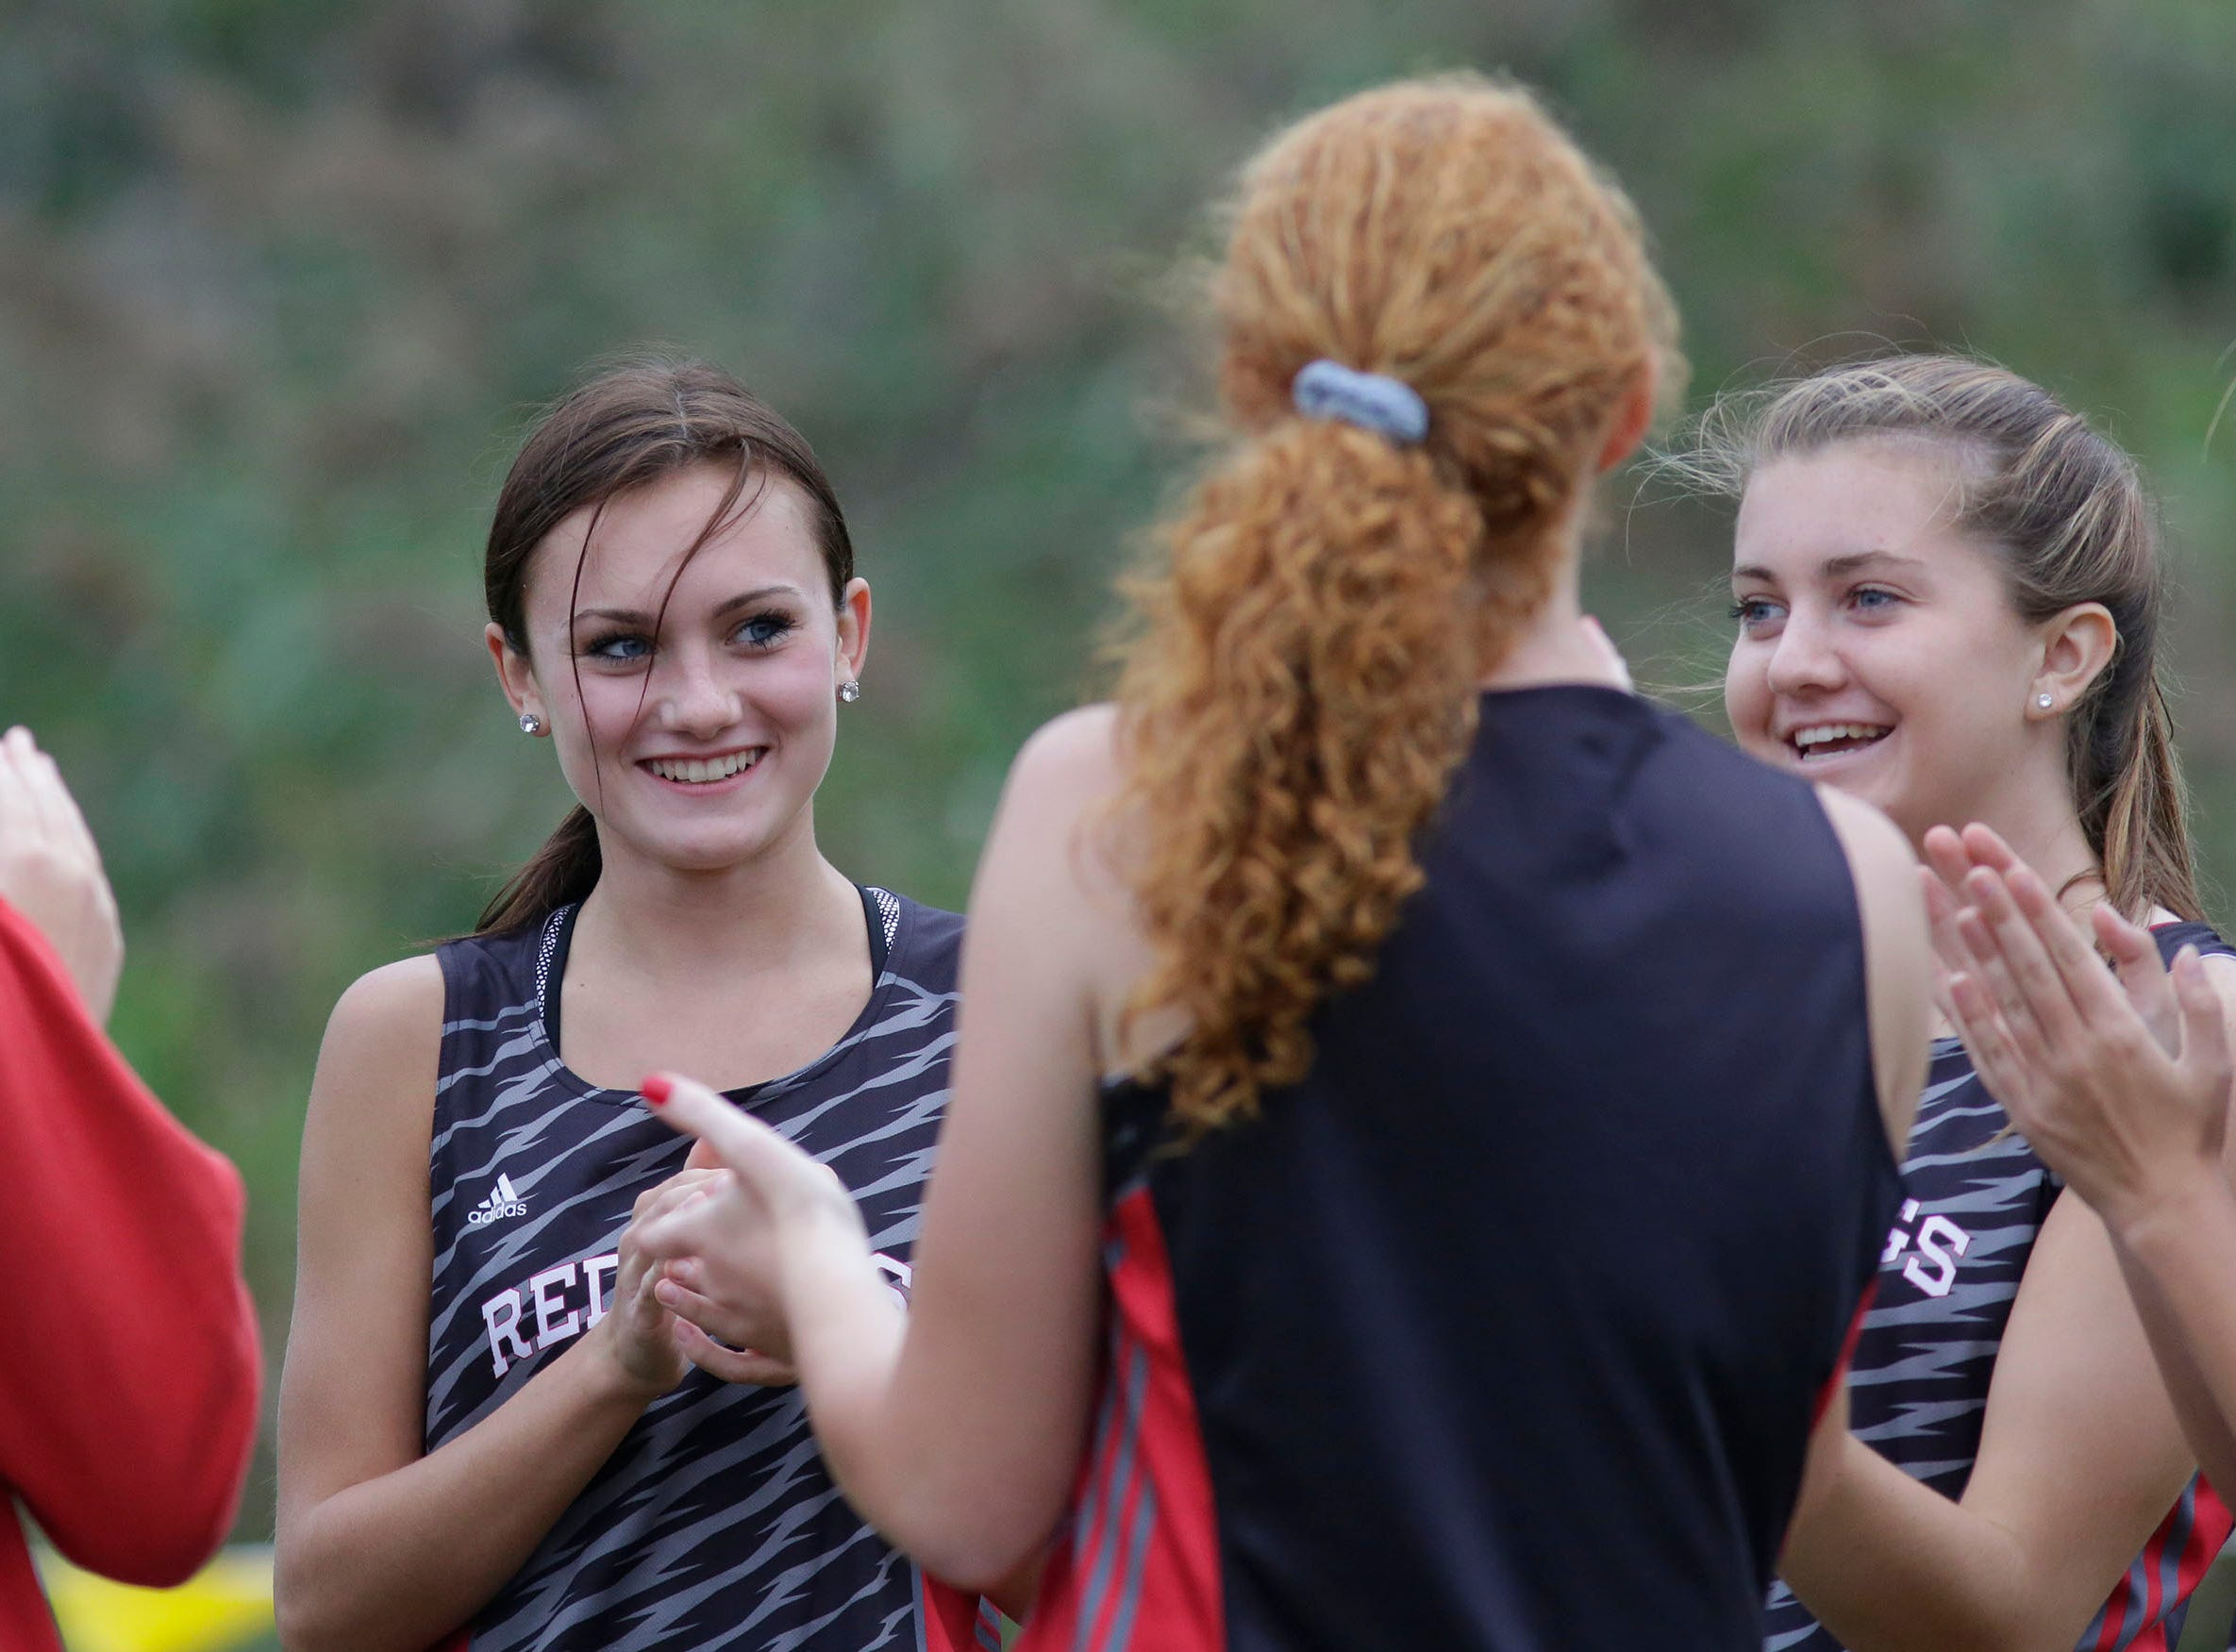 Sheboygan South girls are all smiles before embarking on their run at the Sheboygan County Cross Country Invitational at Sheboygan Lutheran, Tuesday, September 25, 2018, in Sheboygan, Wis.